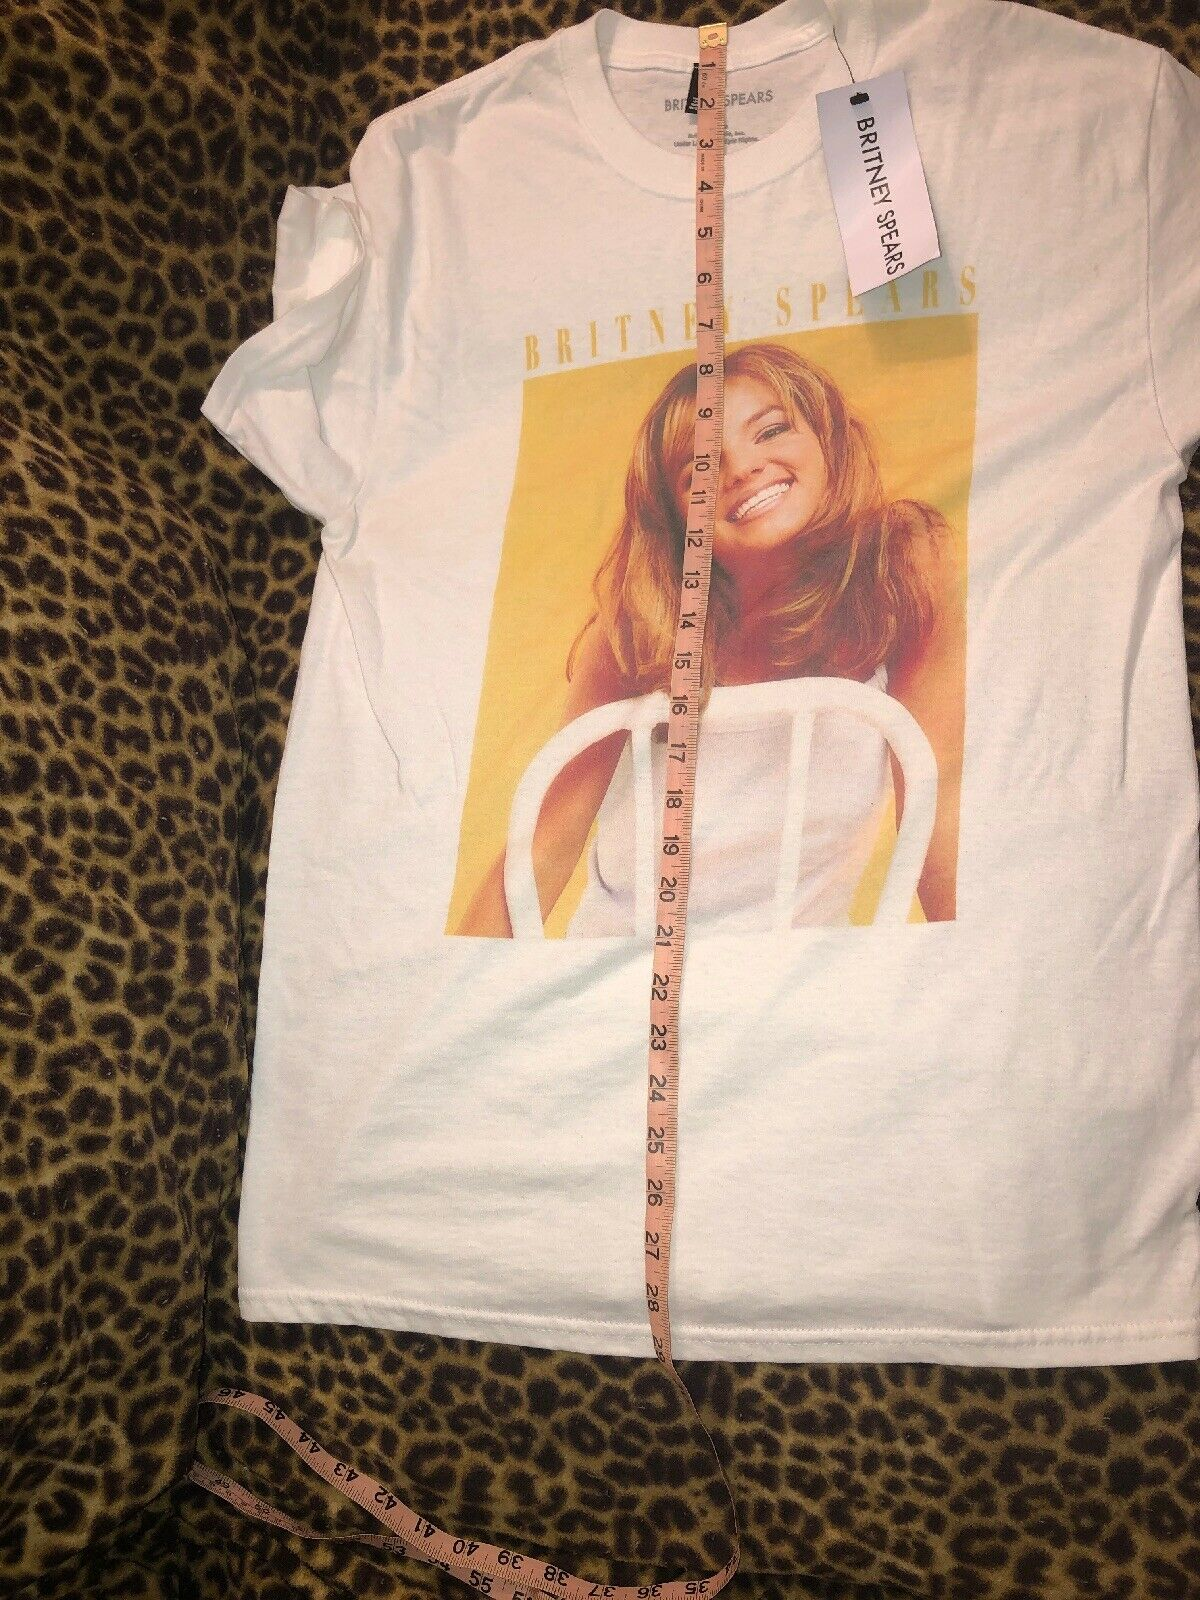 TOPSHOP BRITNEY SPEARS T-SHIRT TOP SIZE SMALL - image 3